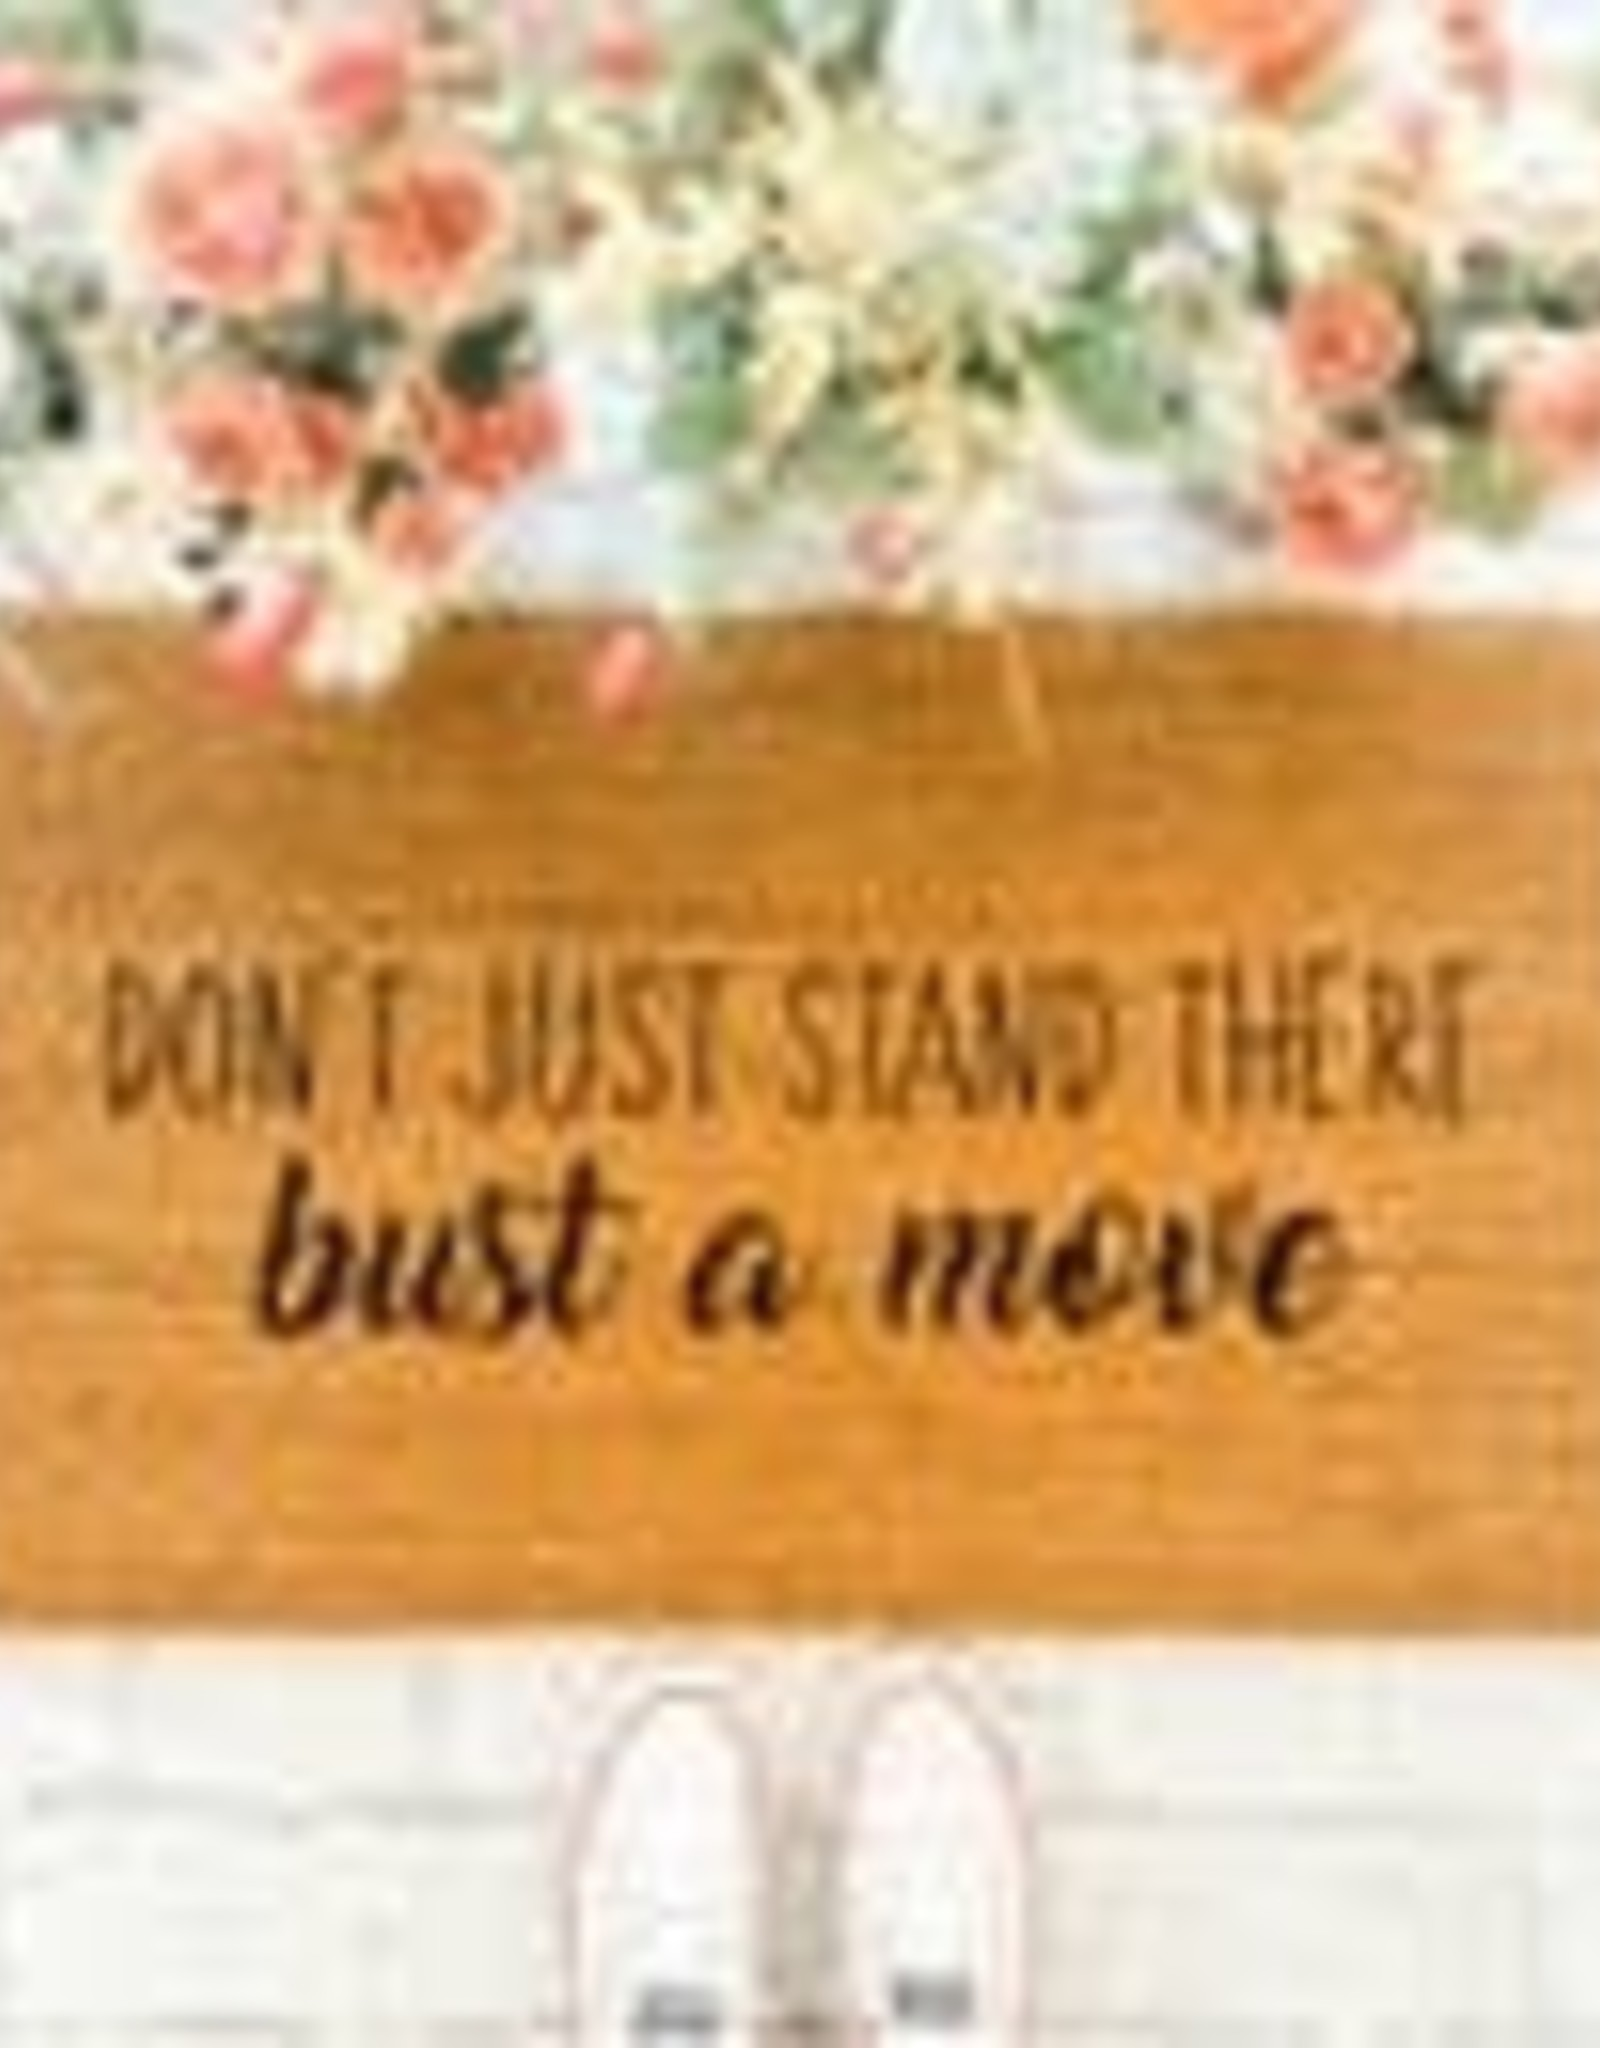 BUST A MOVE DOORMAT